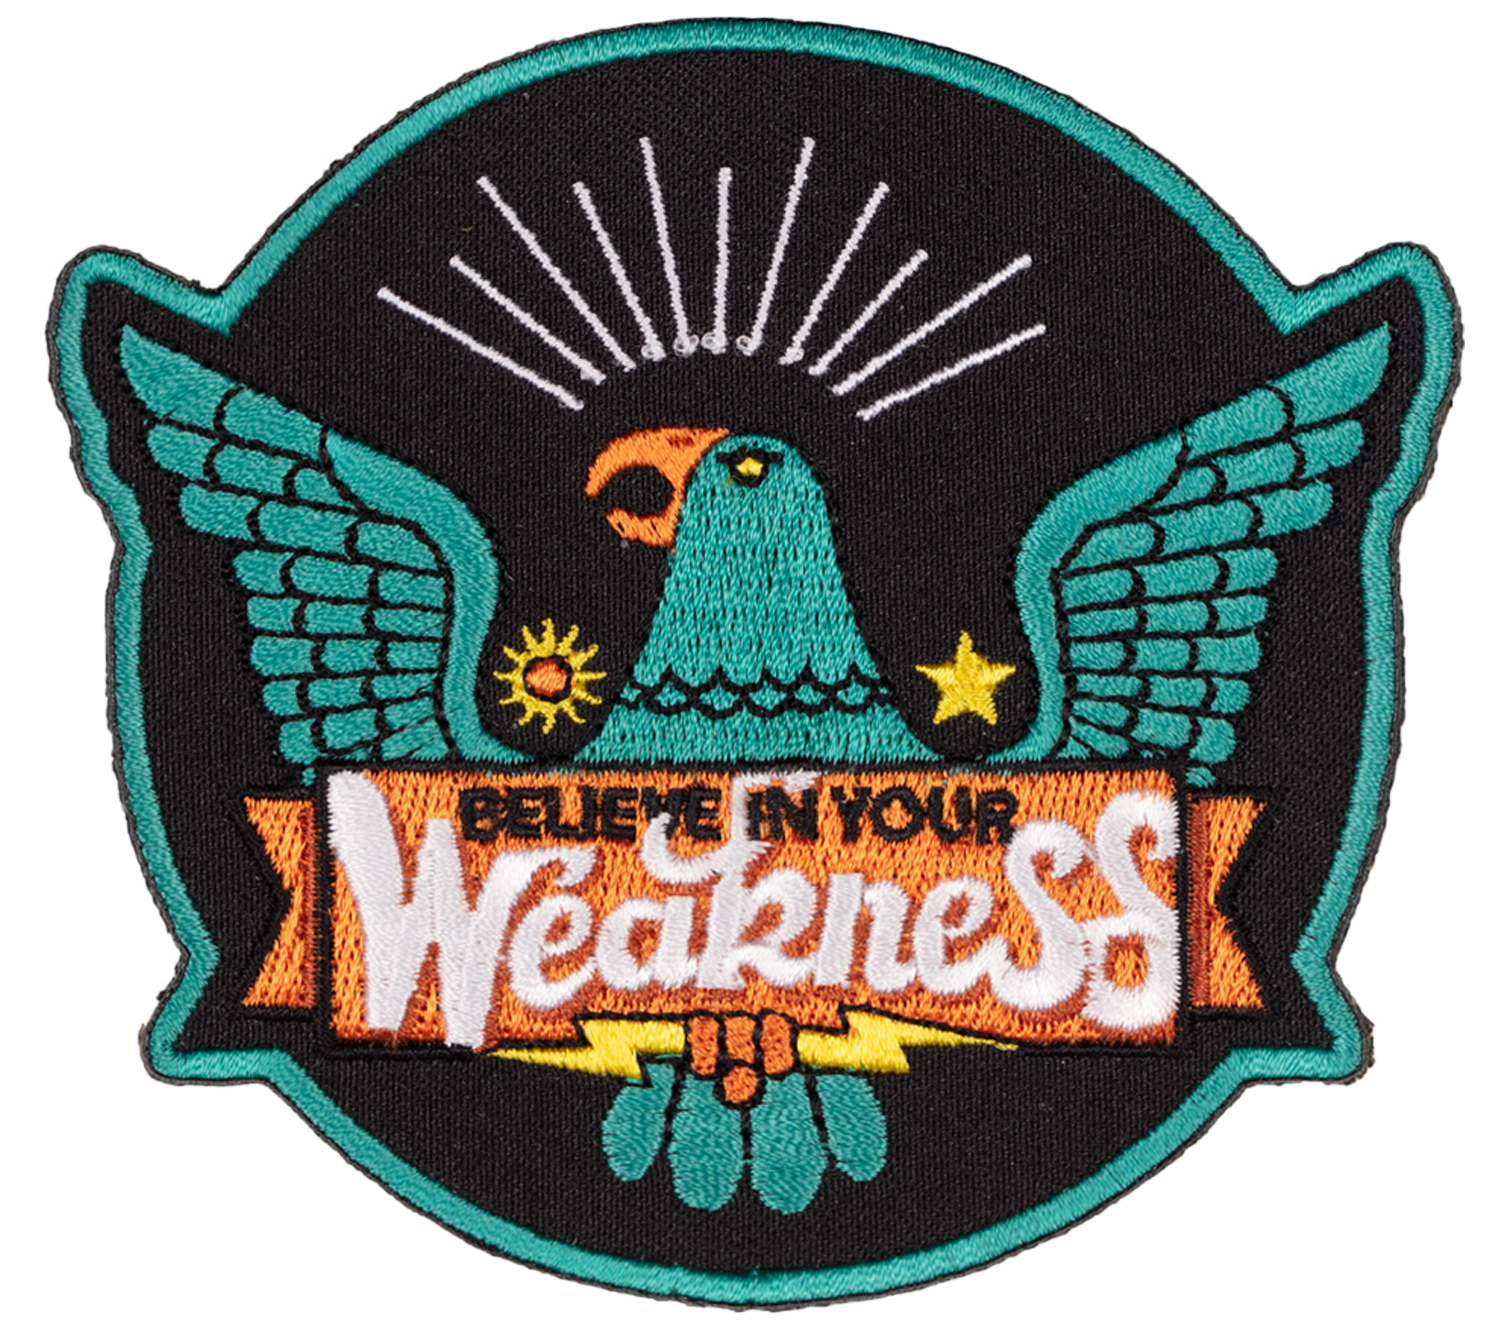 07-CT-believeinyourweakness-patch.png